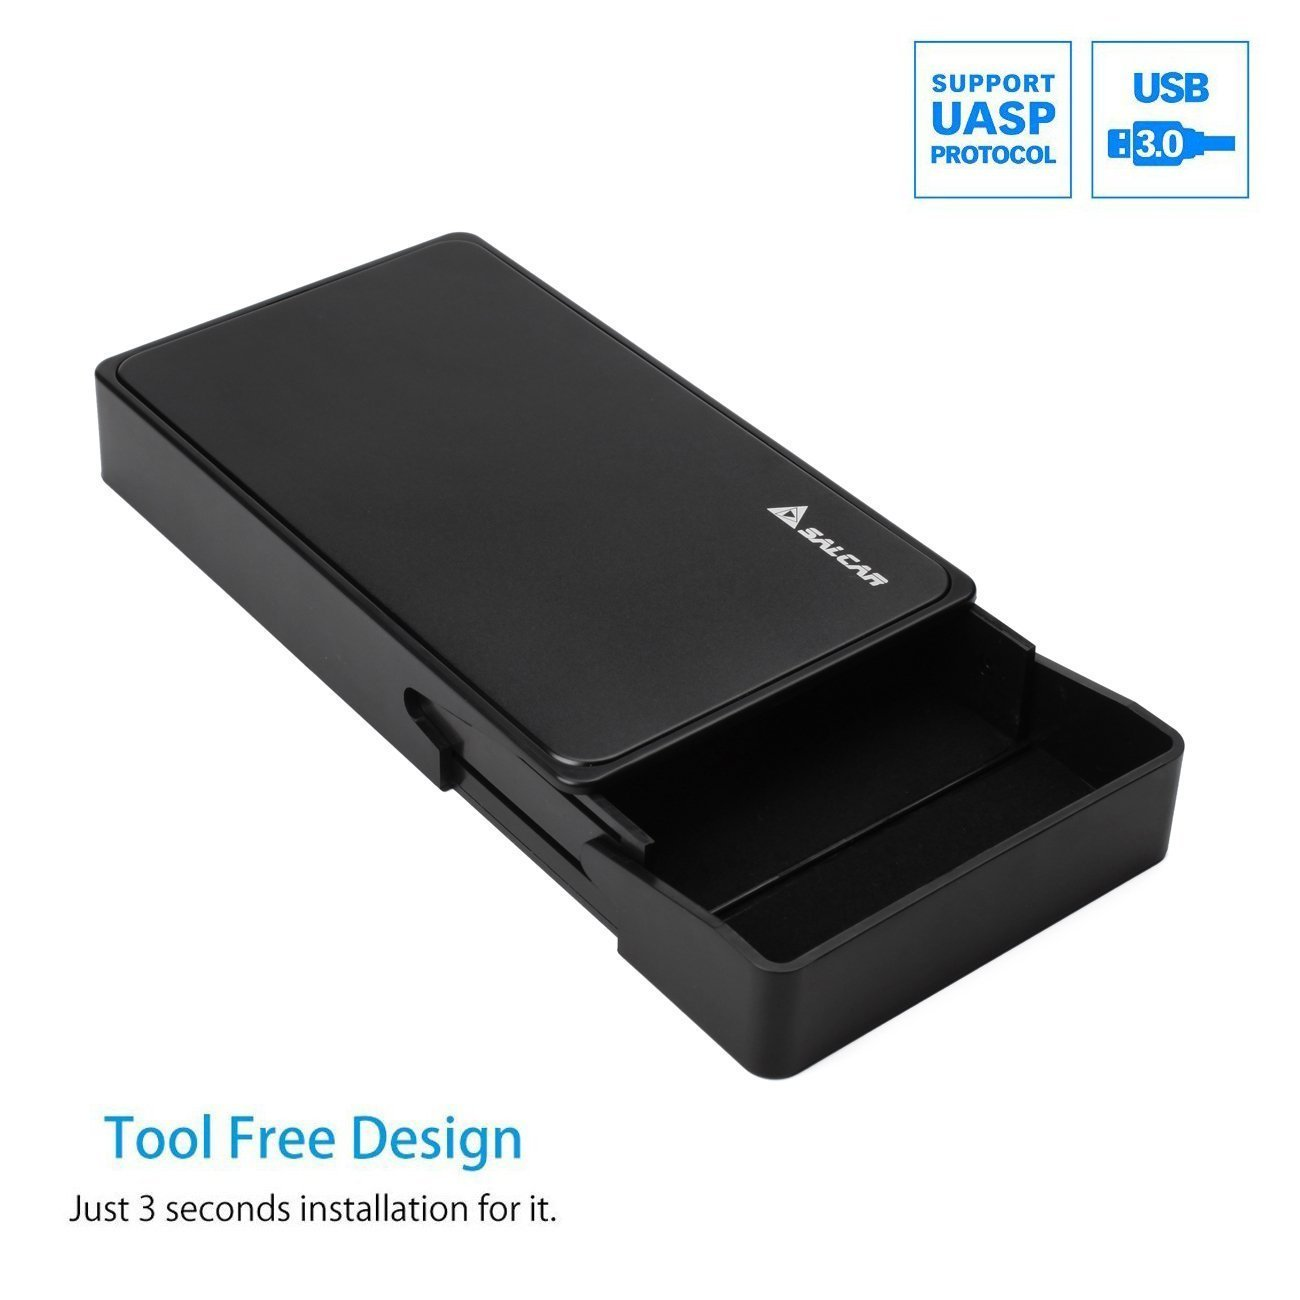 Salcar USB 3.0 Hard Disk Drive Enclosure for 3.5 Inch SATA HDD and SSD External Hard Drive Enclosure HDD Case Support UASP